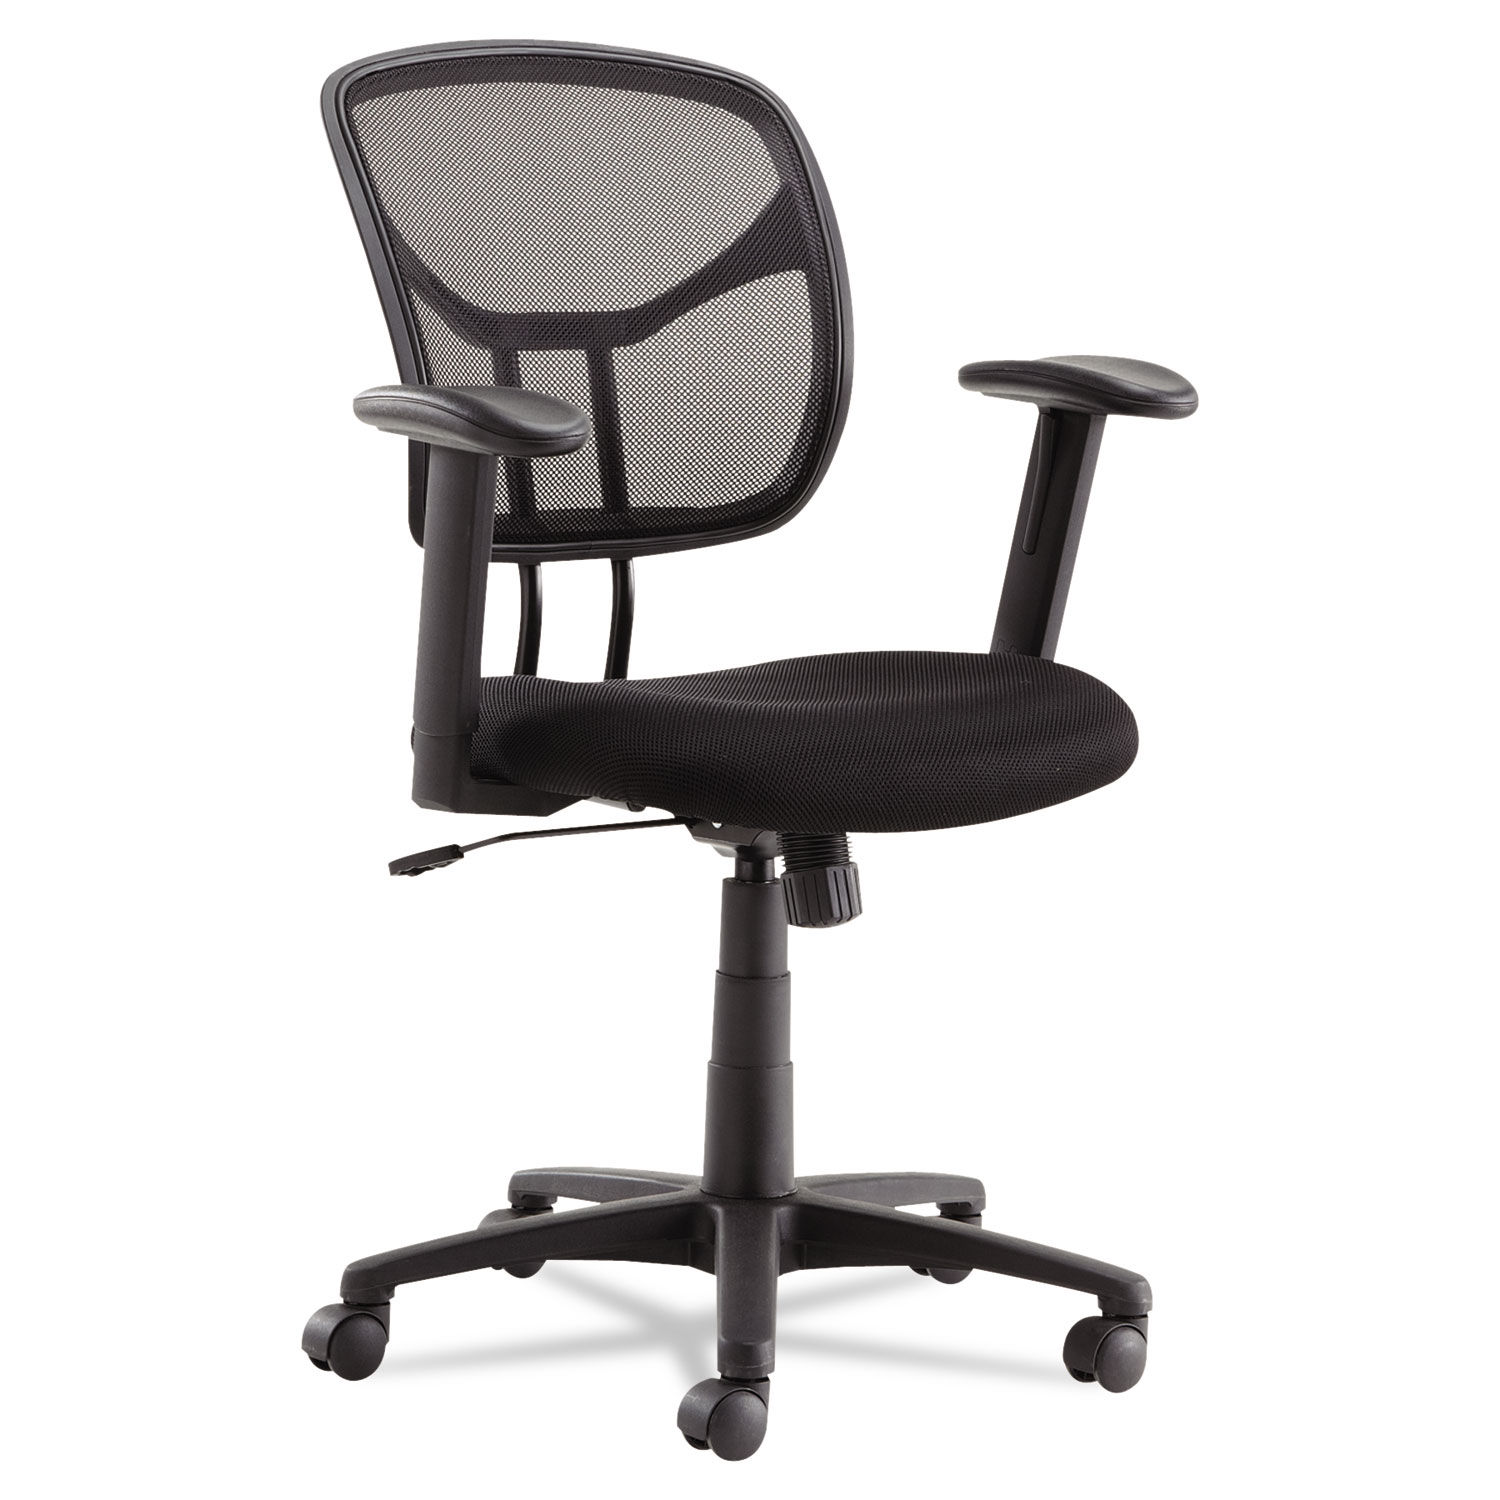 Swivel Tilt Mesh Task Chair With Adjustable Arms Supports Up To 250 Lbs Black Seat Black Back Black Base